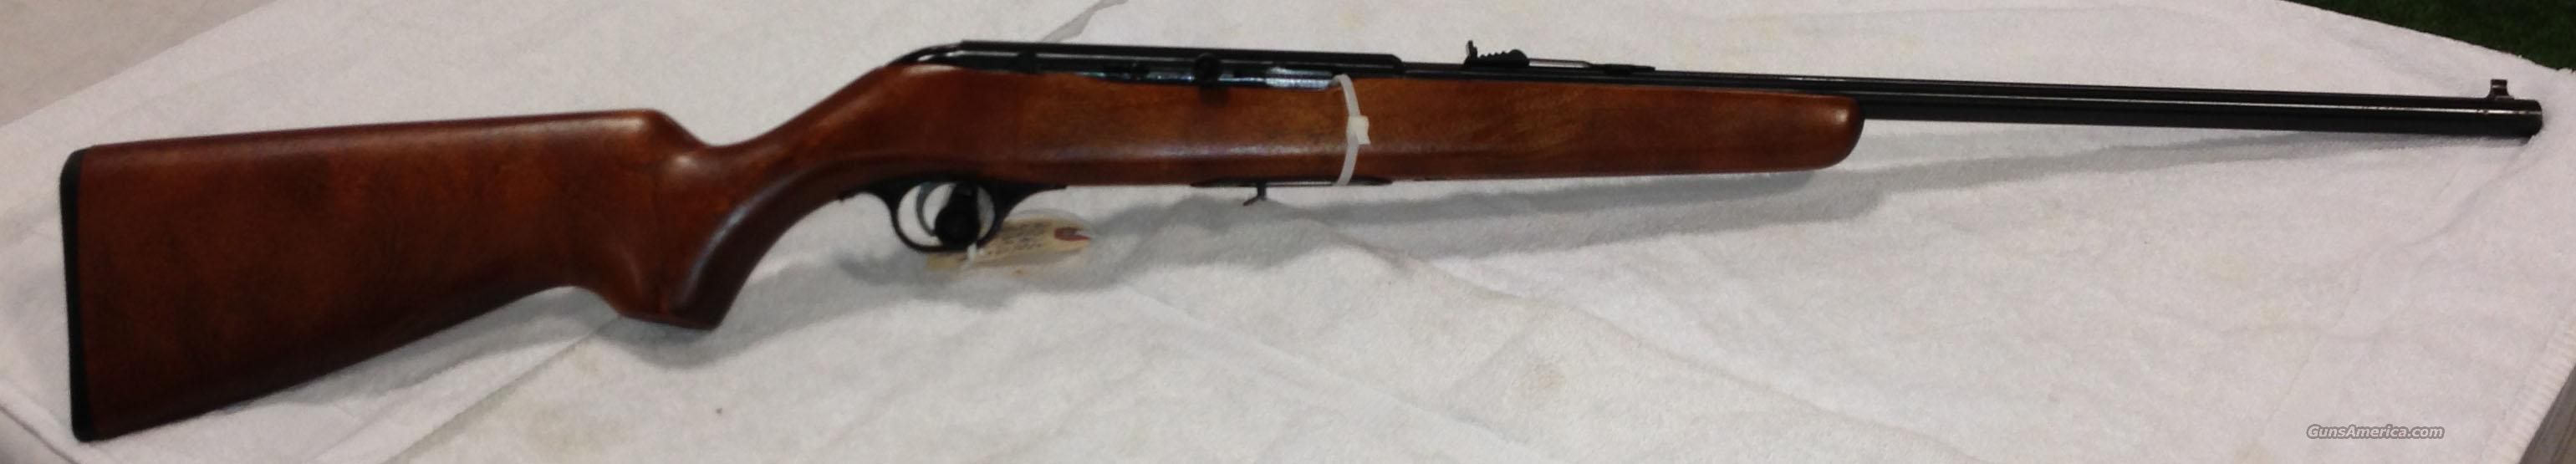 Mosberg New Haven Model 250C 22LR  Guns > Rifles > Mossberg Rifles > Plinkster Series